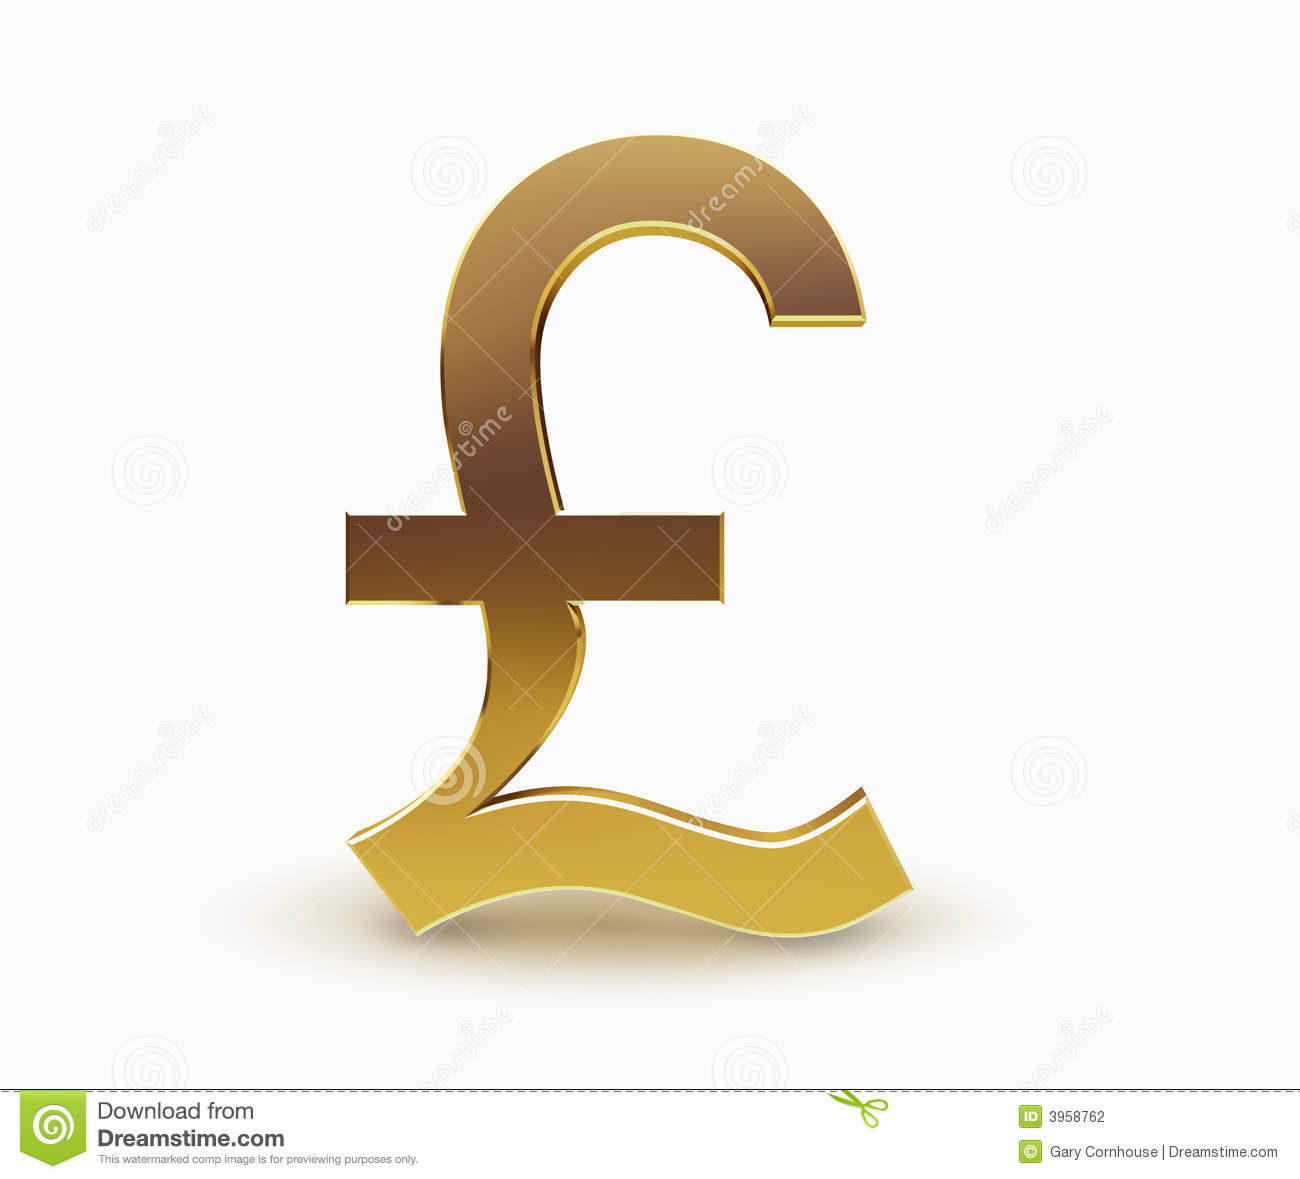 Libras Esterlinas Euros Gold Pound Currency Symbol Royalty Free Stock Photo